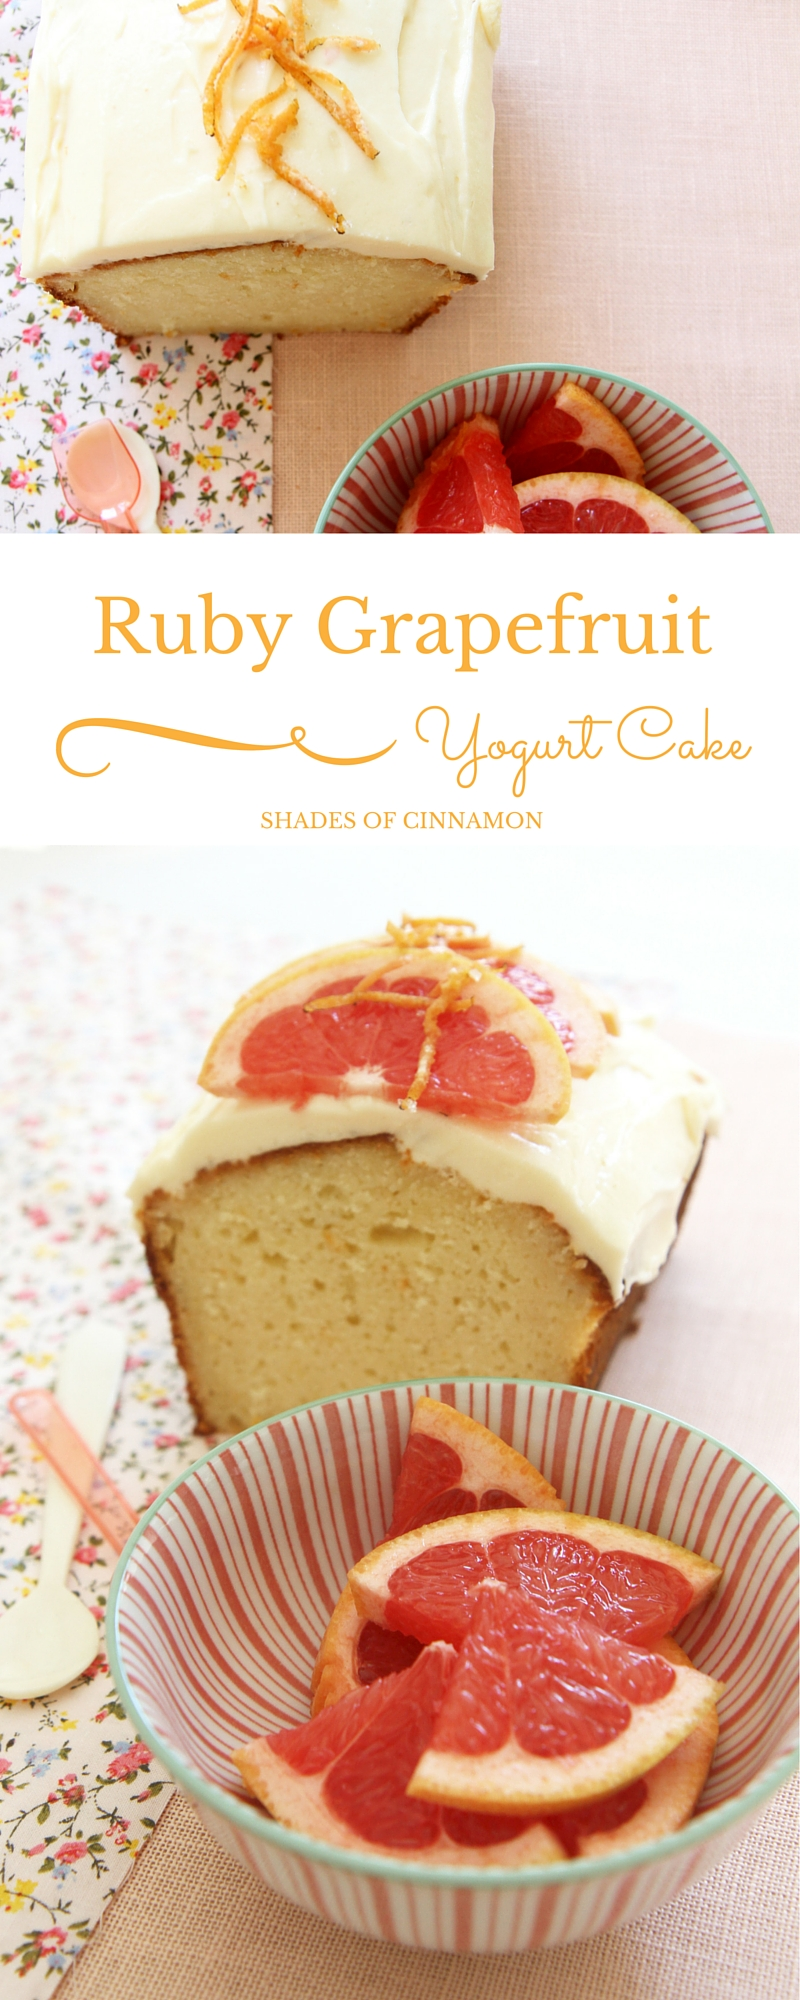 Yogurt and grapefruit cake